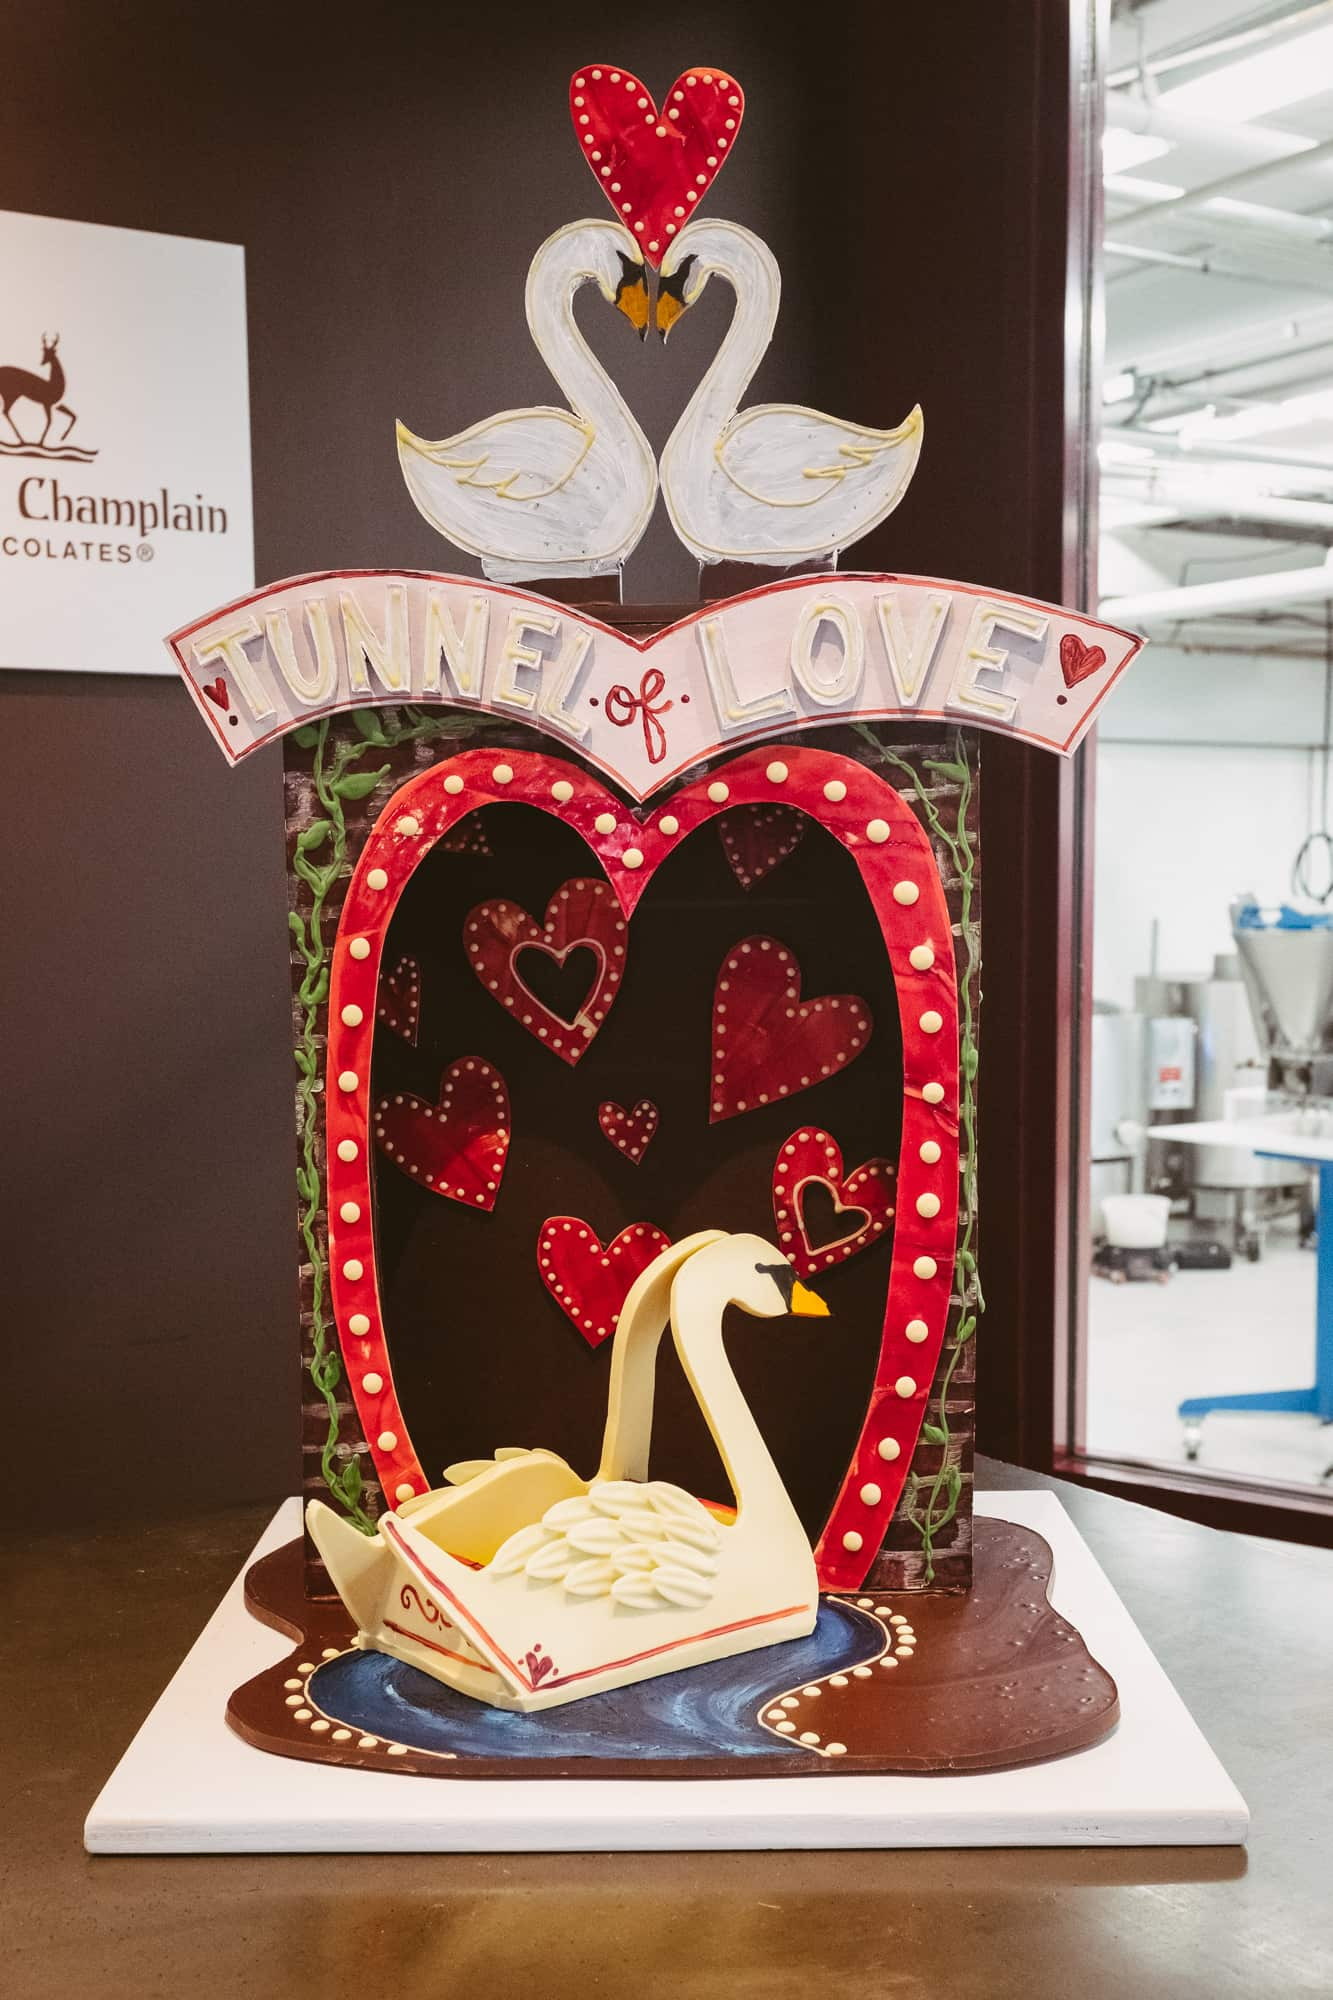 Tunnel of Love chocolate sculpture